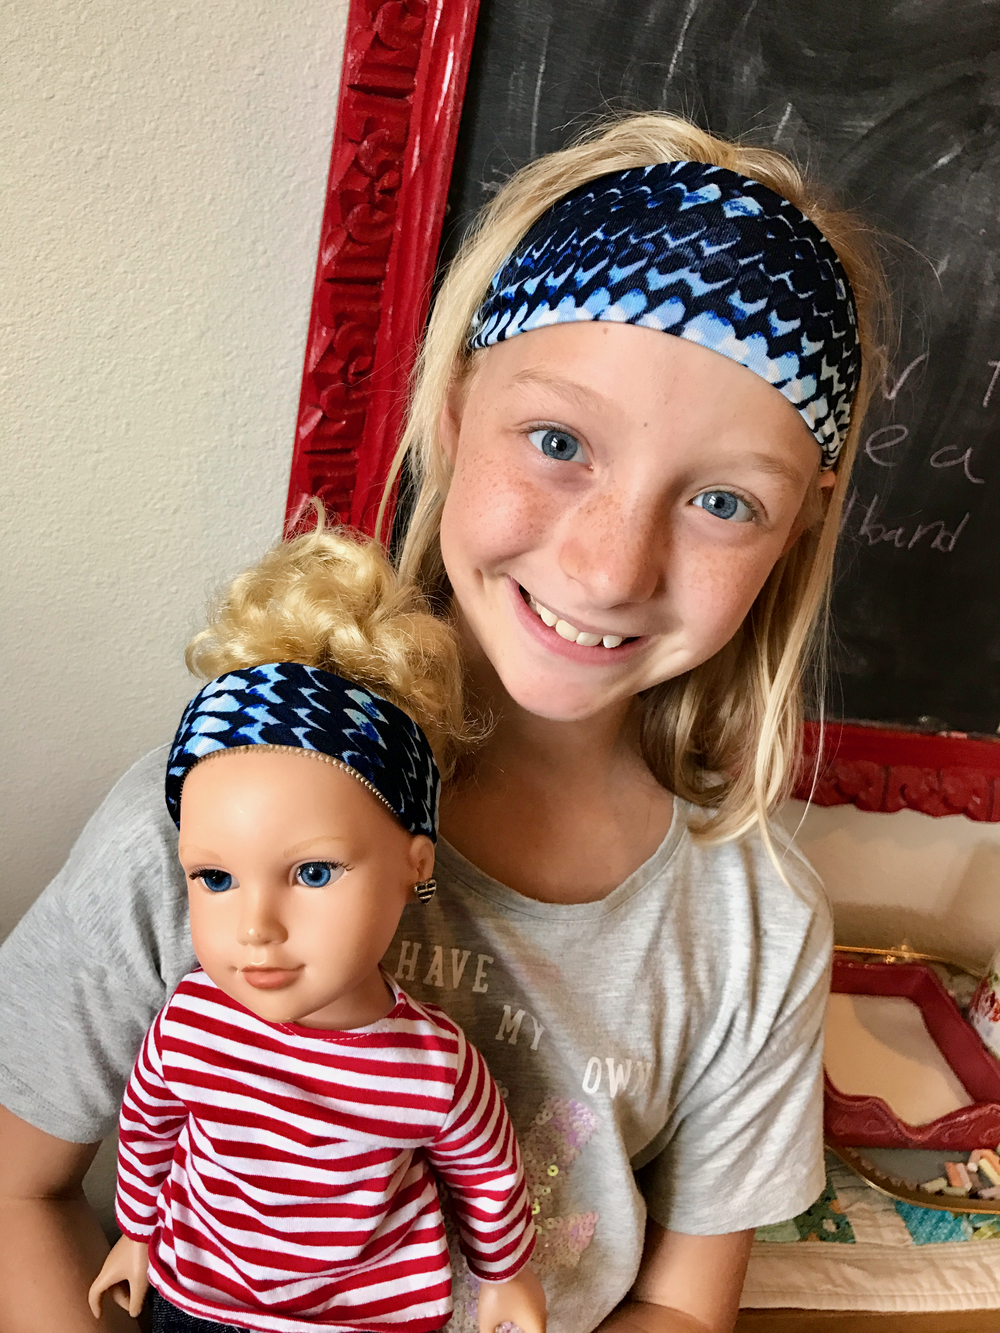 How to Make Soft Headbands - Instructions for girls and dolls!